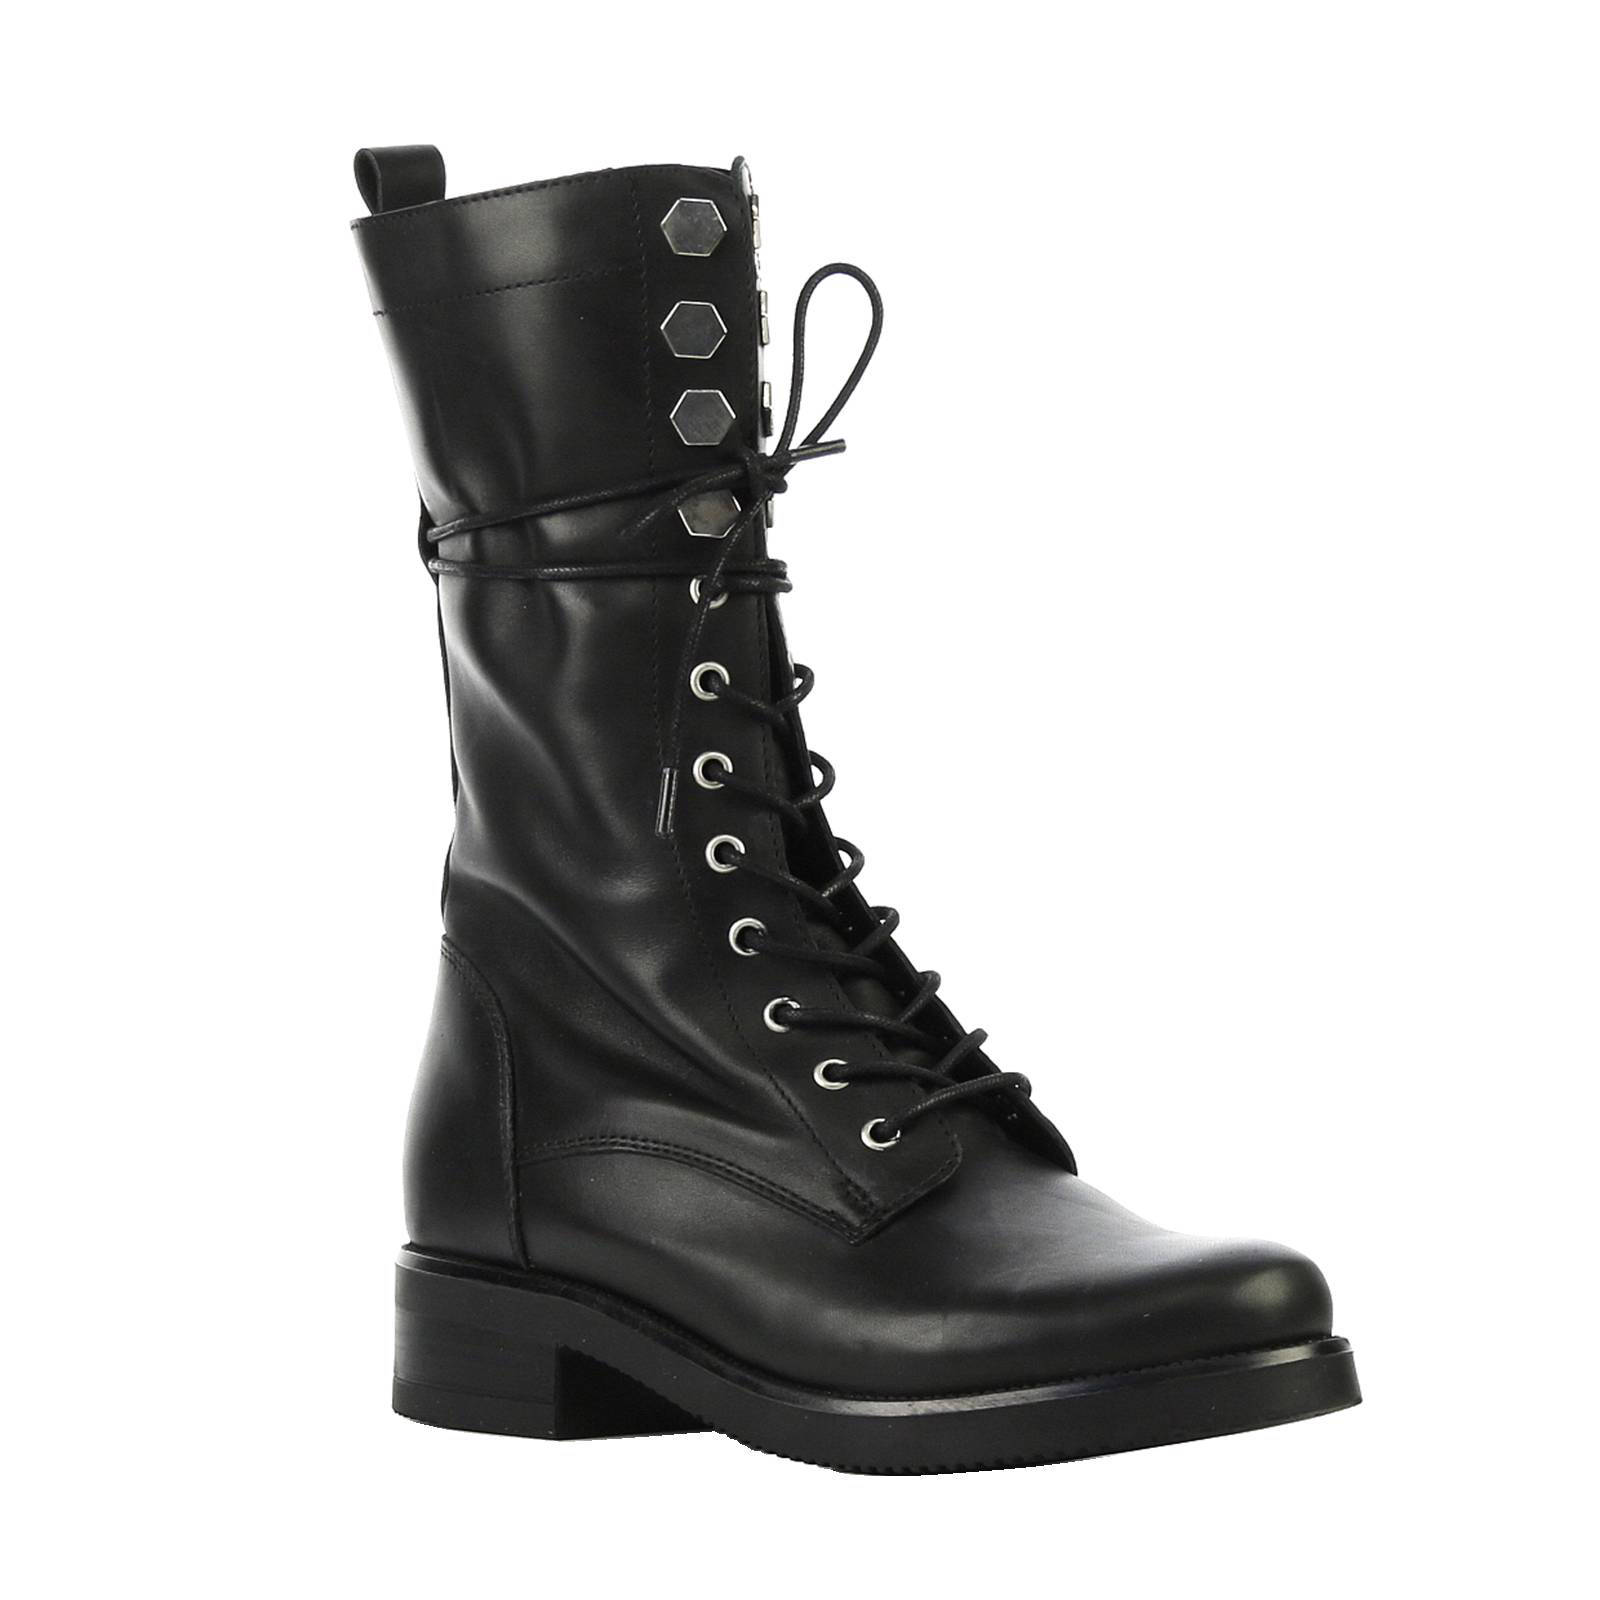 leren laarzen Hexagon Army Boot zwart